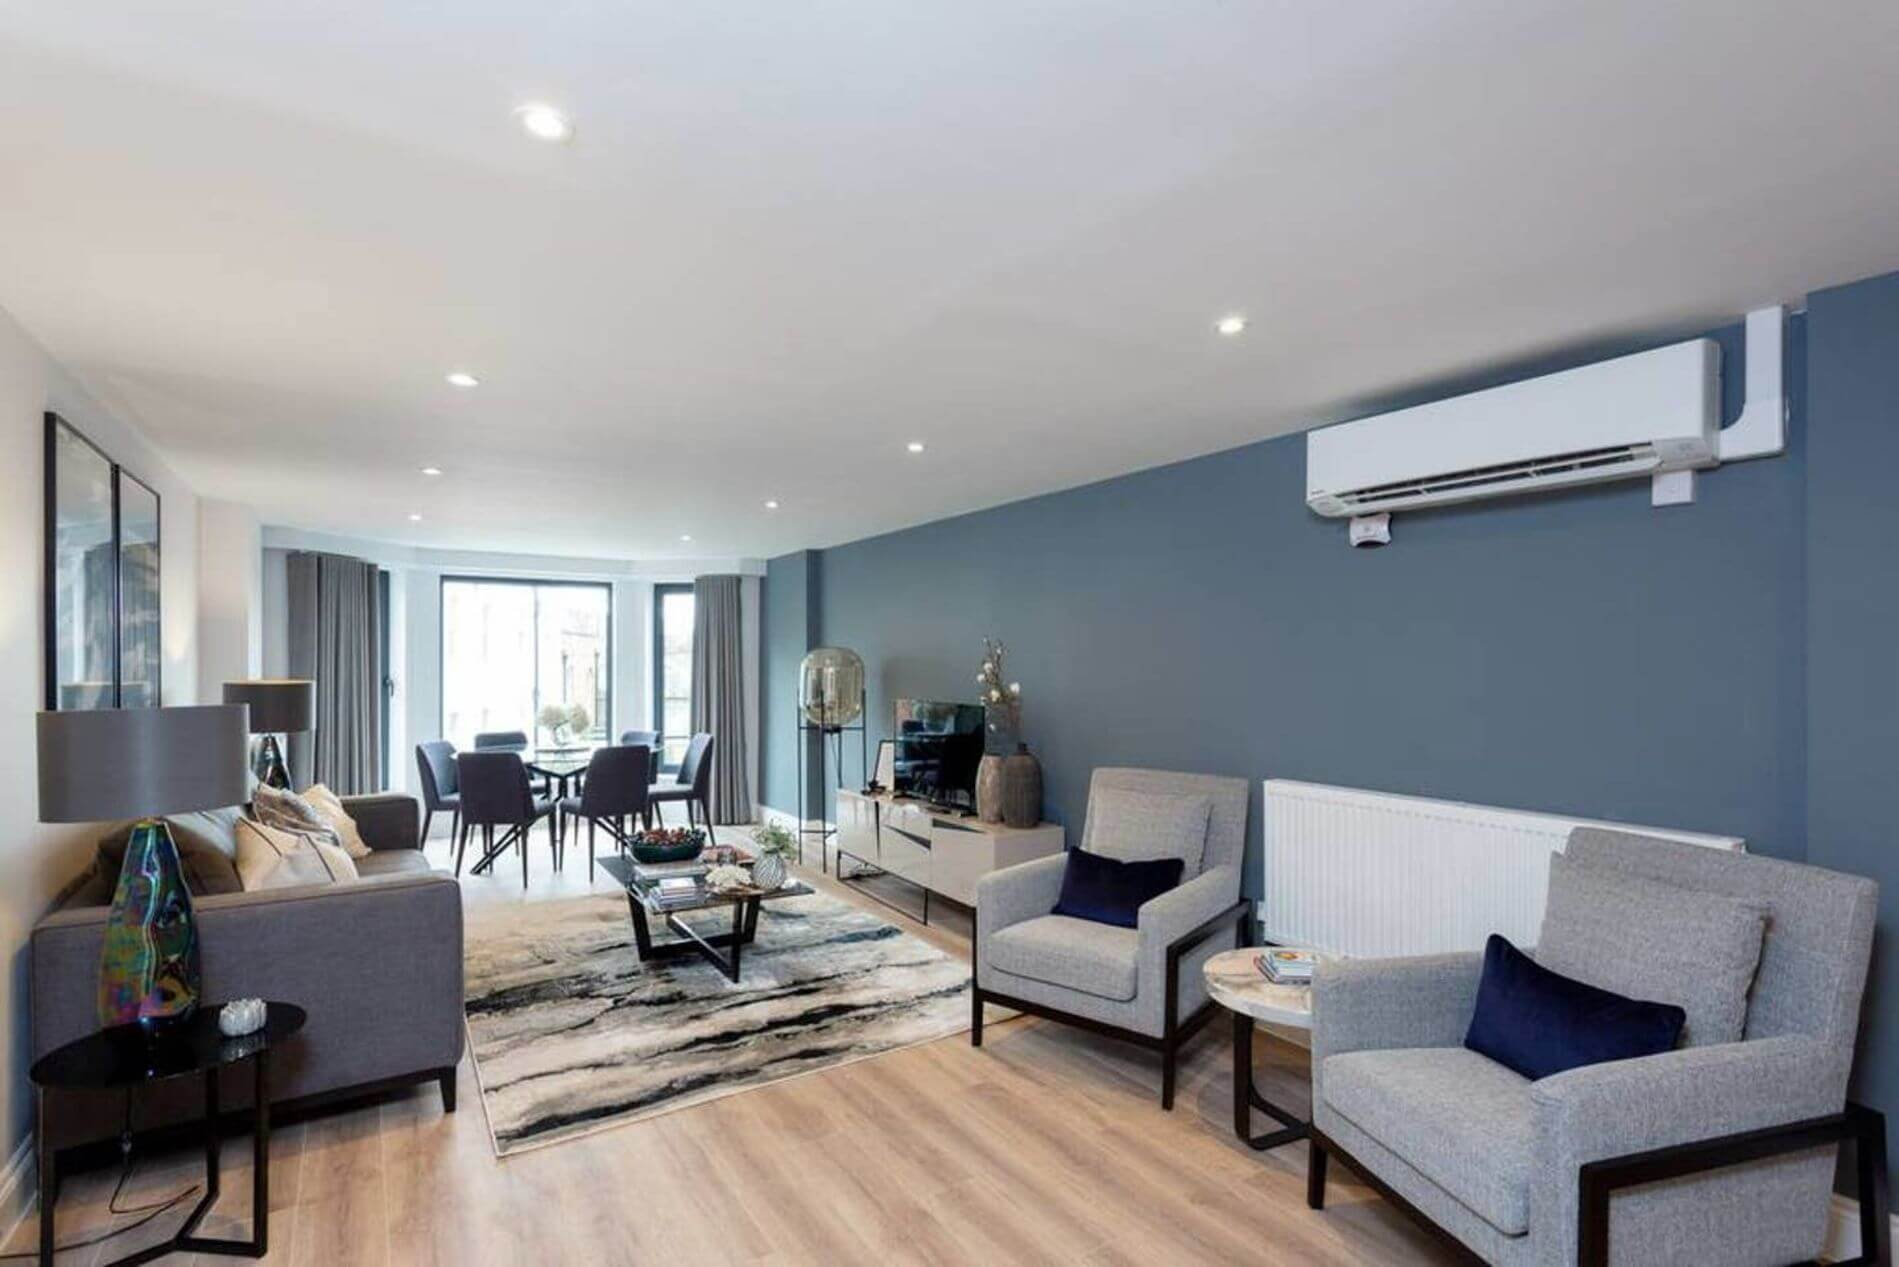 3 bedroom serviced apartment in Earls Court, London for long stays